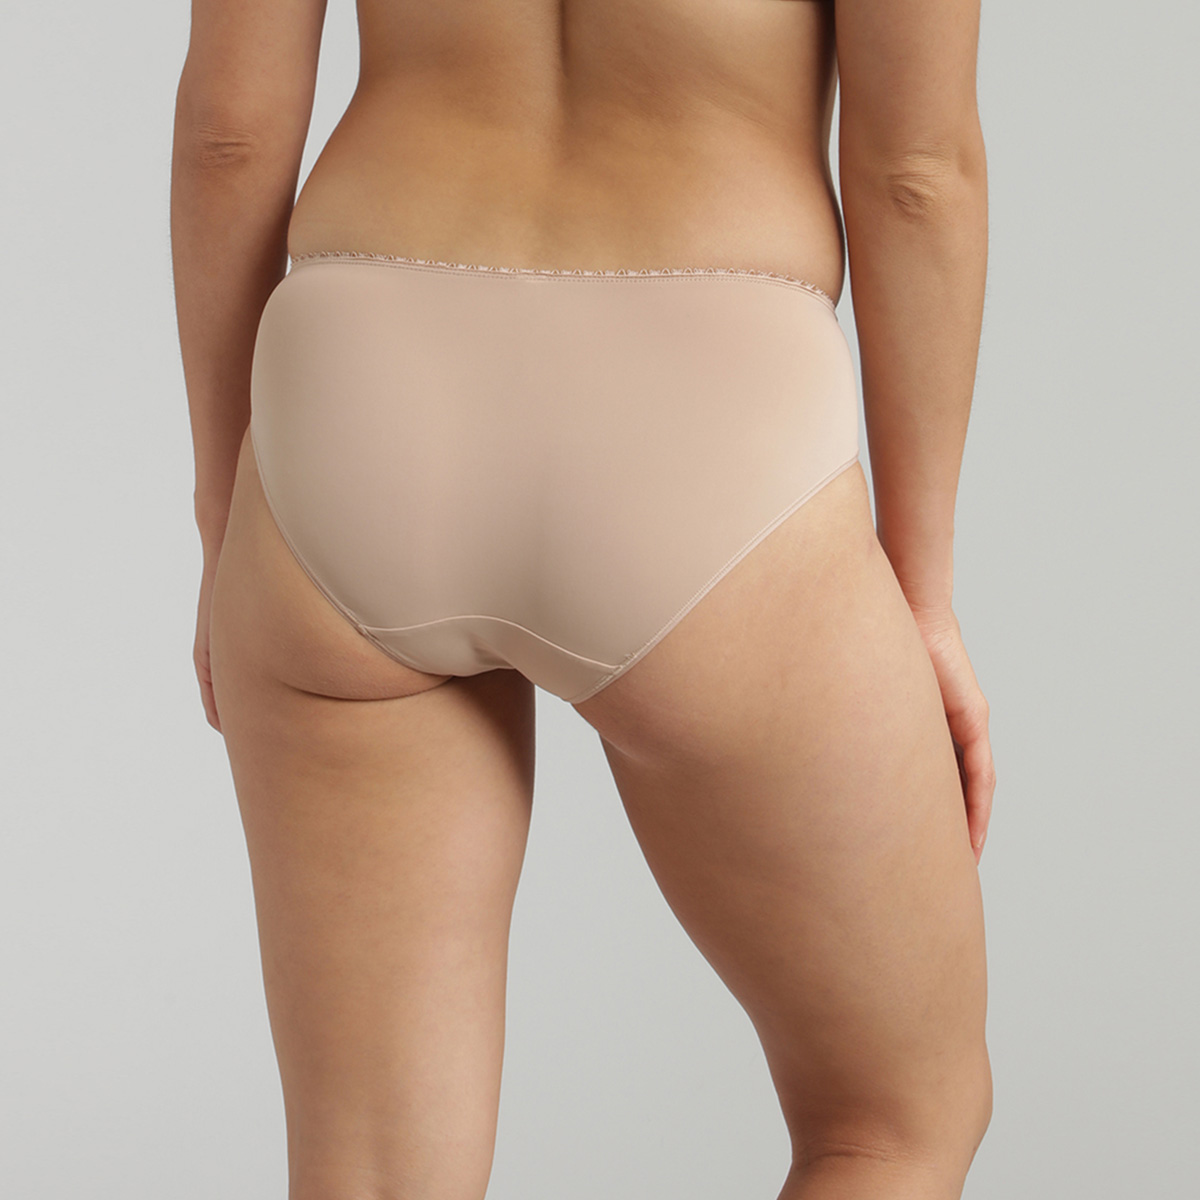 Midi knickers in beige – Flower Elegance, , PLAYTEX